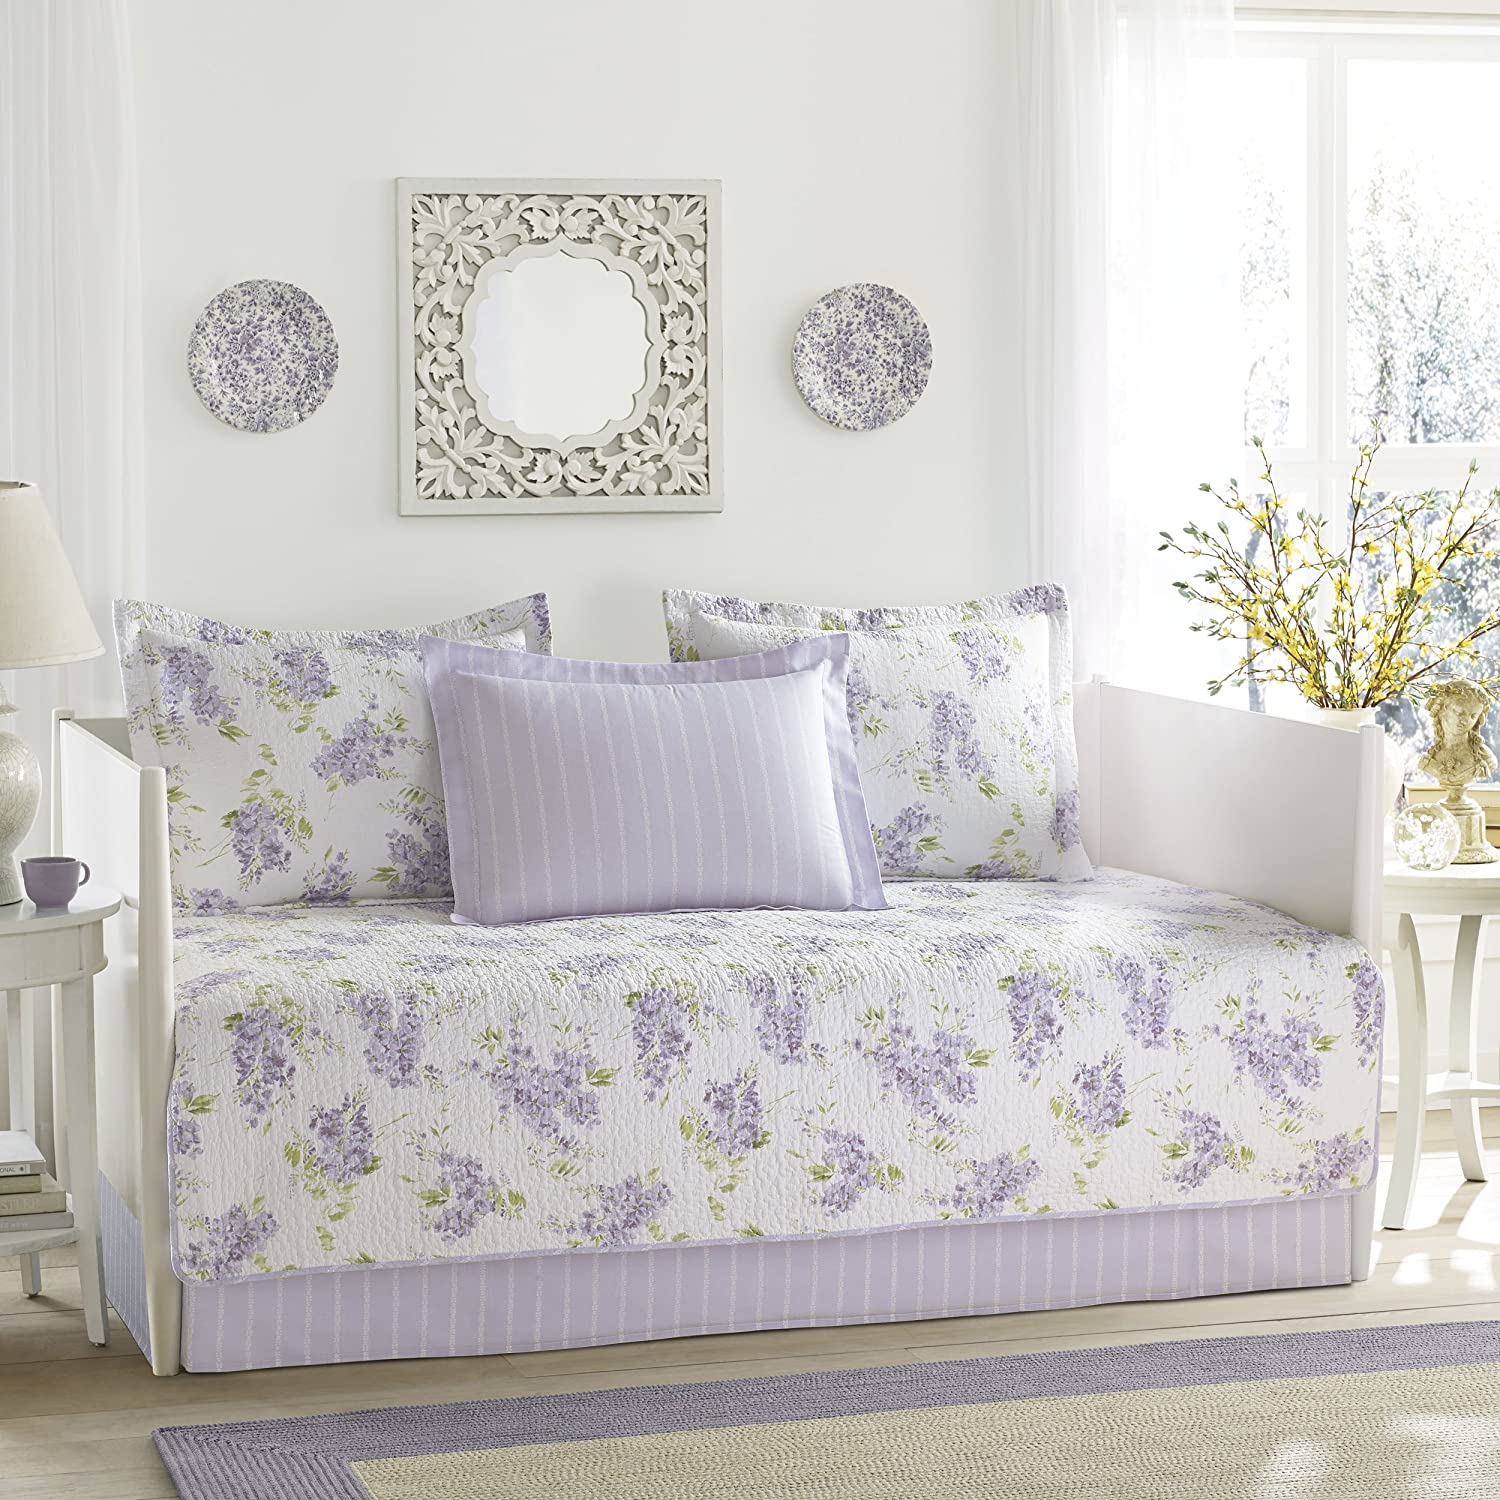 Laura Ashley Keighley 5-Piece Daybed Cover Set, Twin, Purple Revman International 225192